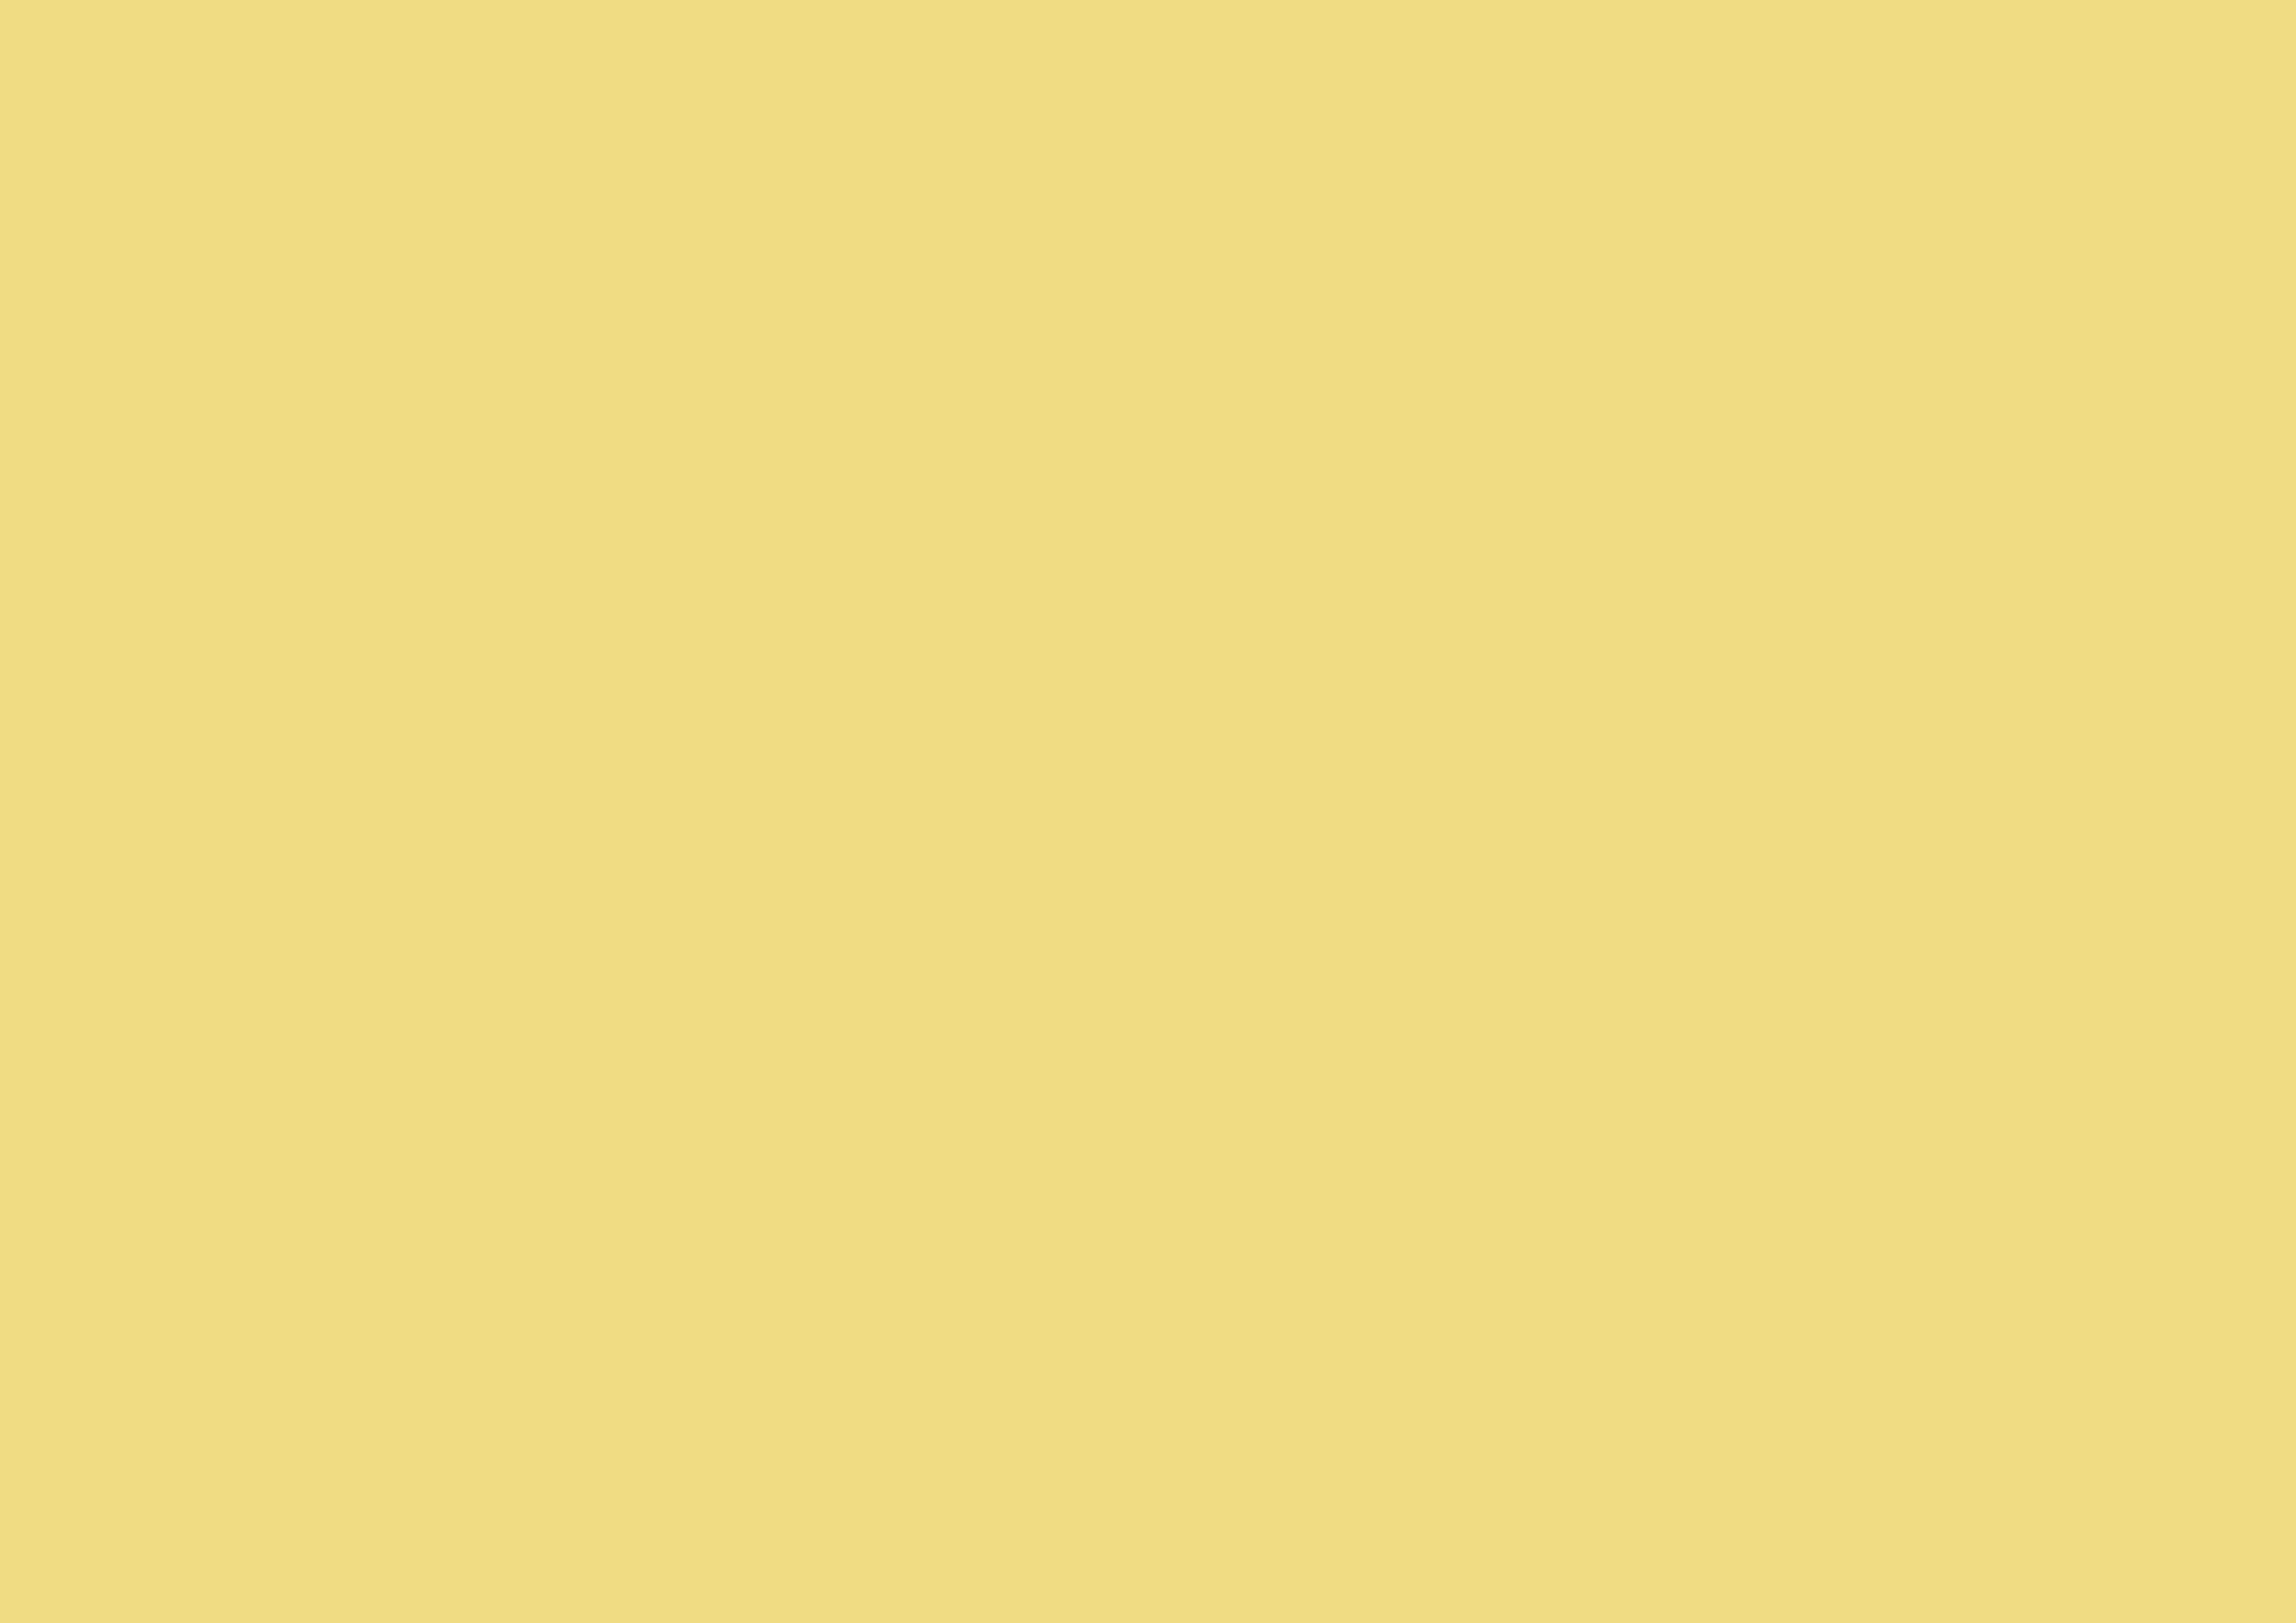 3508x2480 Buff Solid Color Background